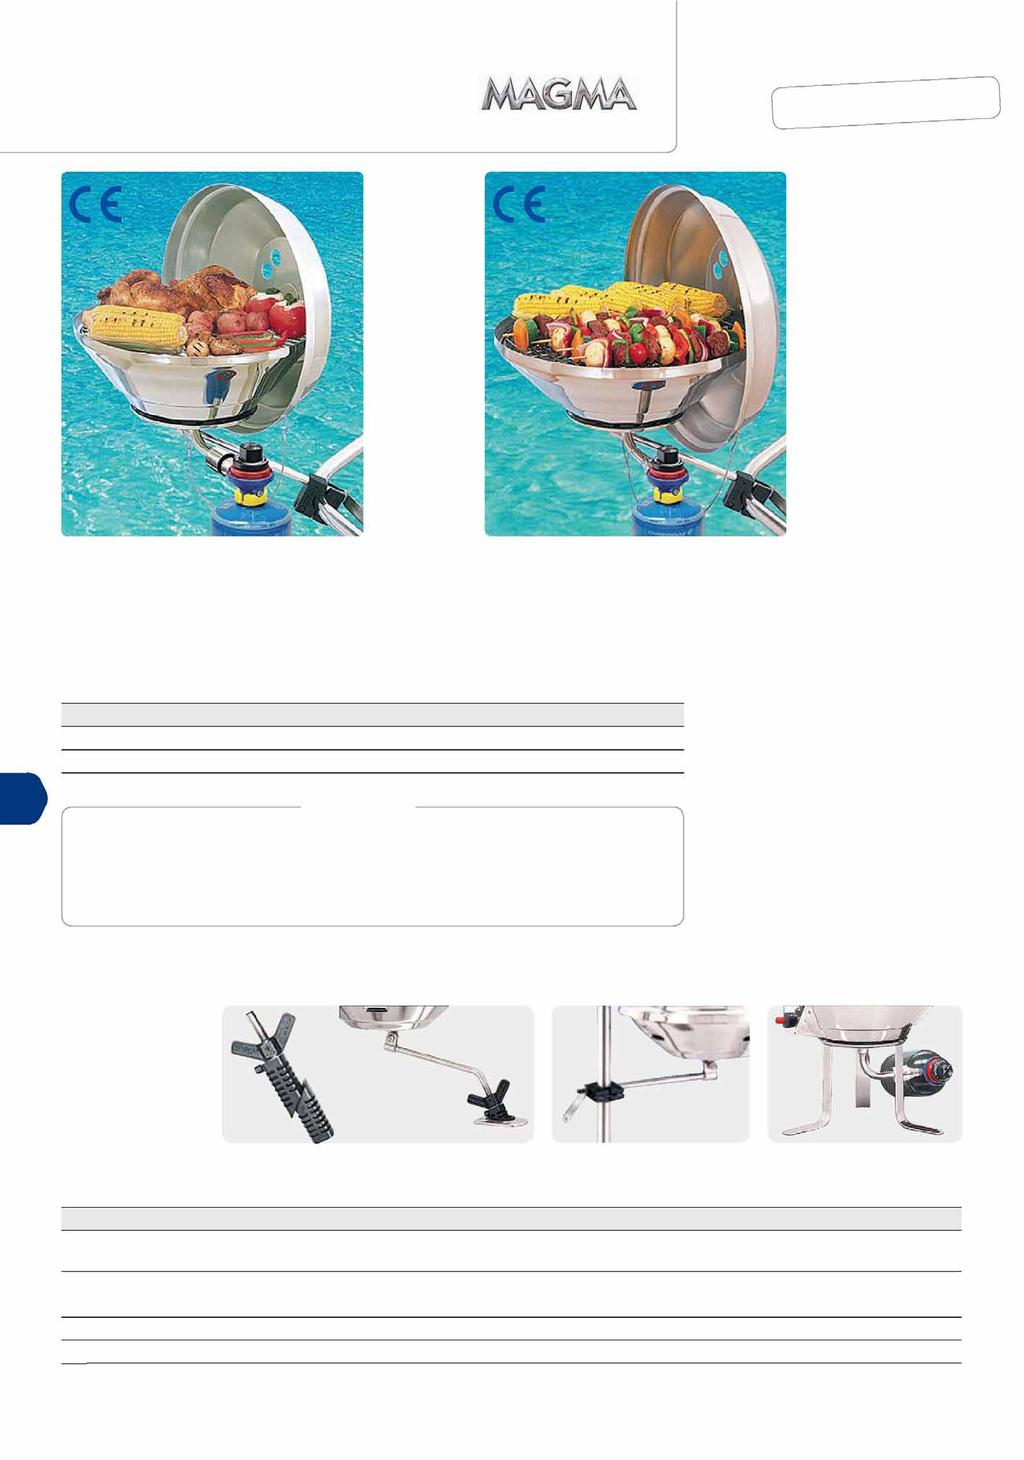 arbecue Gas barbecue set Patented Marine Kettle by Magma offers you the safety, durability and performance you need for an onboard barbecue. escription Ref.